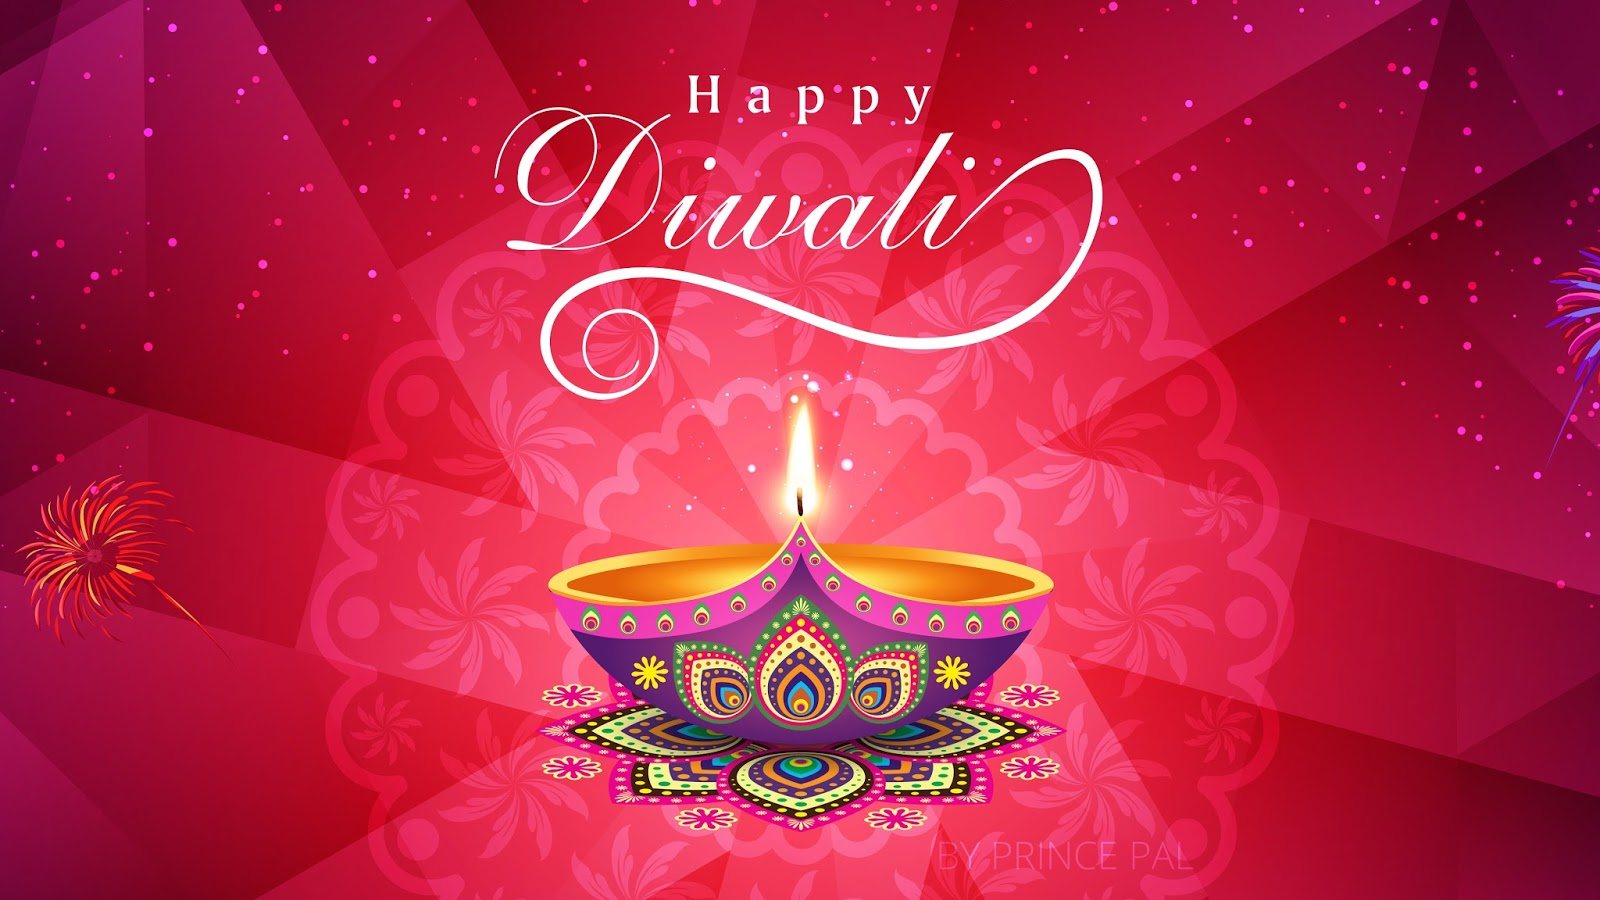 Diwali Latest Imeges Happy Diwali Greeting Cards Free Download 2017